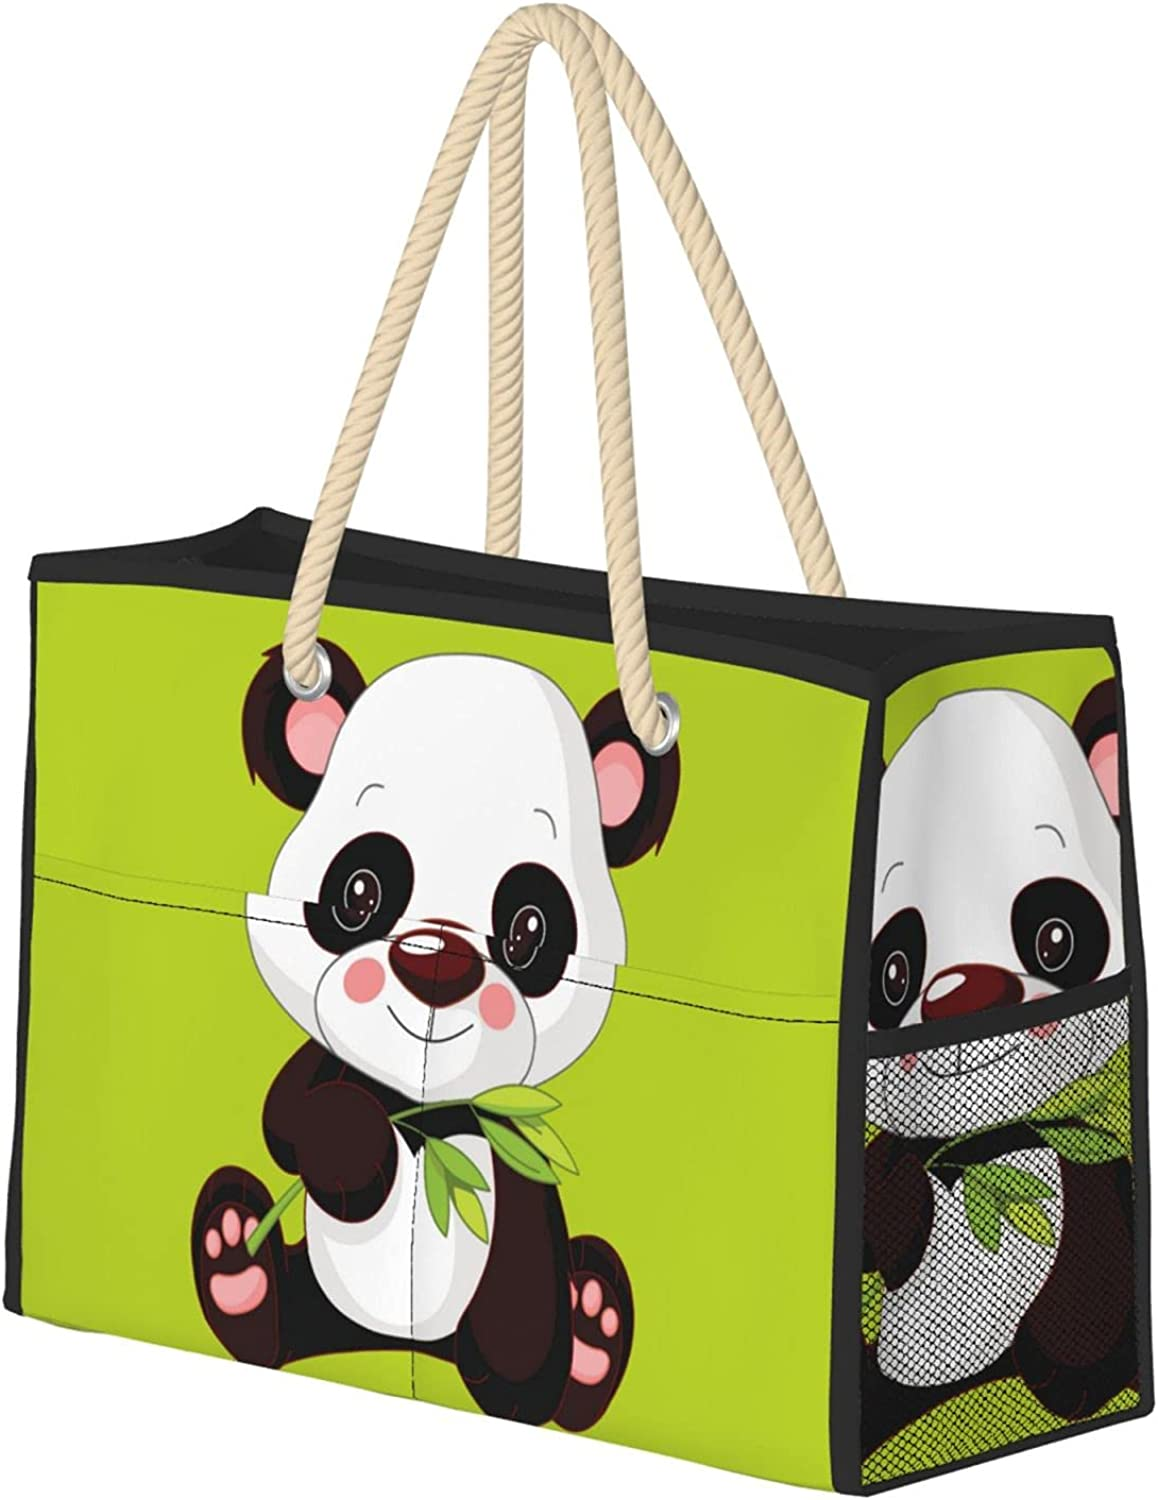 Panda Beach Bag Japan's largest assortment Tote Travel And Bags Special price For Bagtravel Women